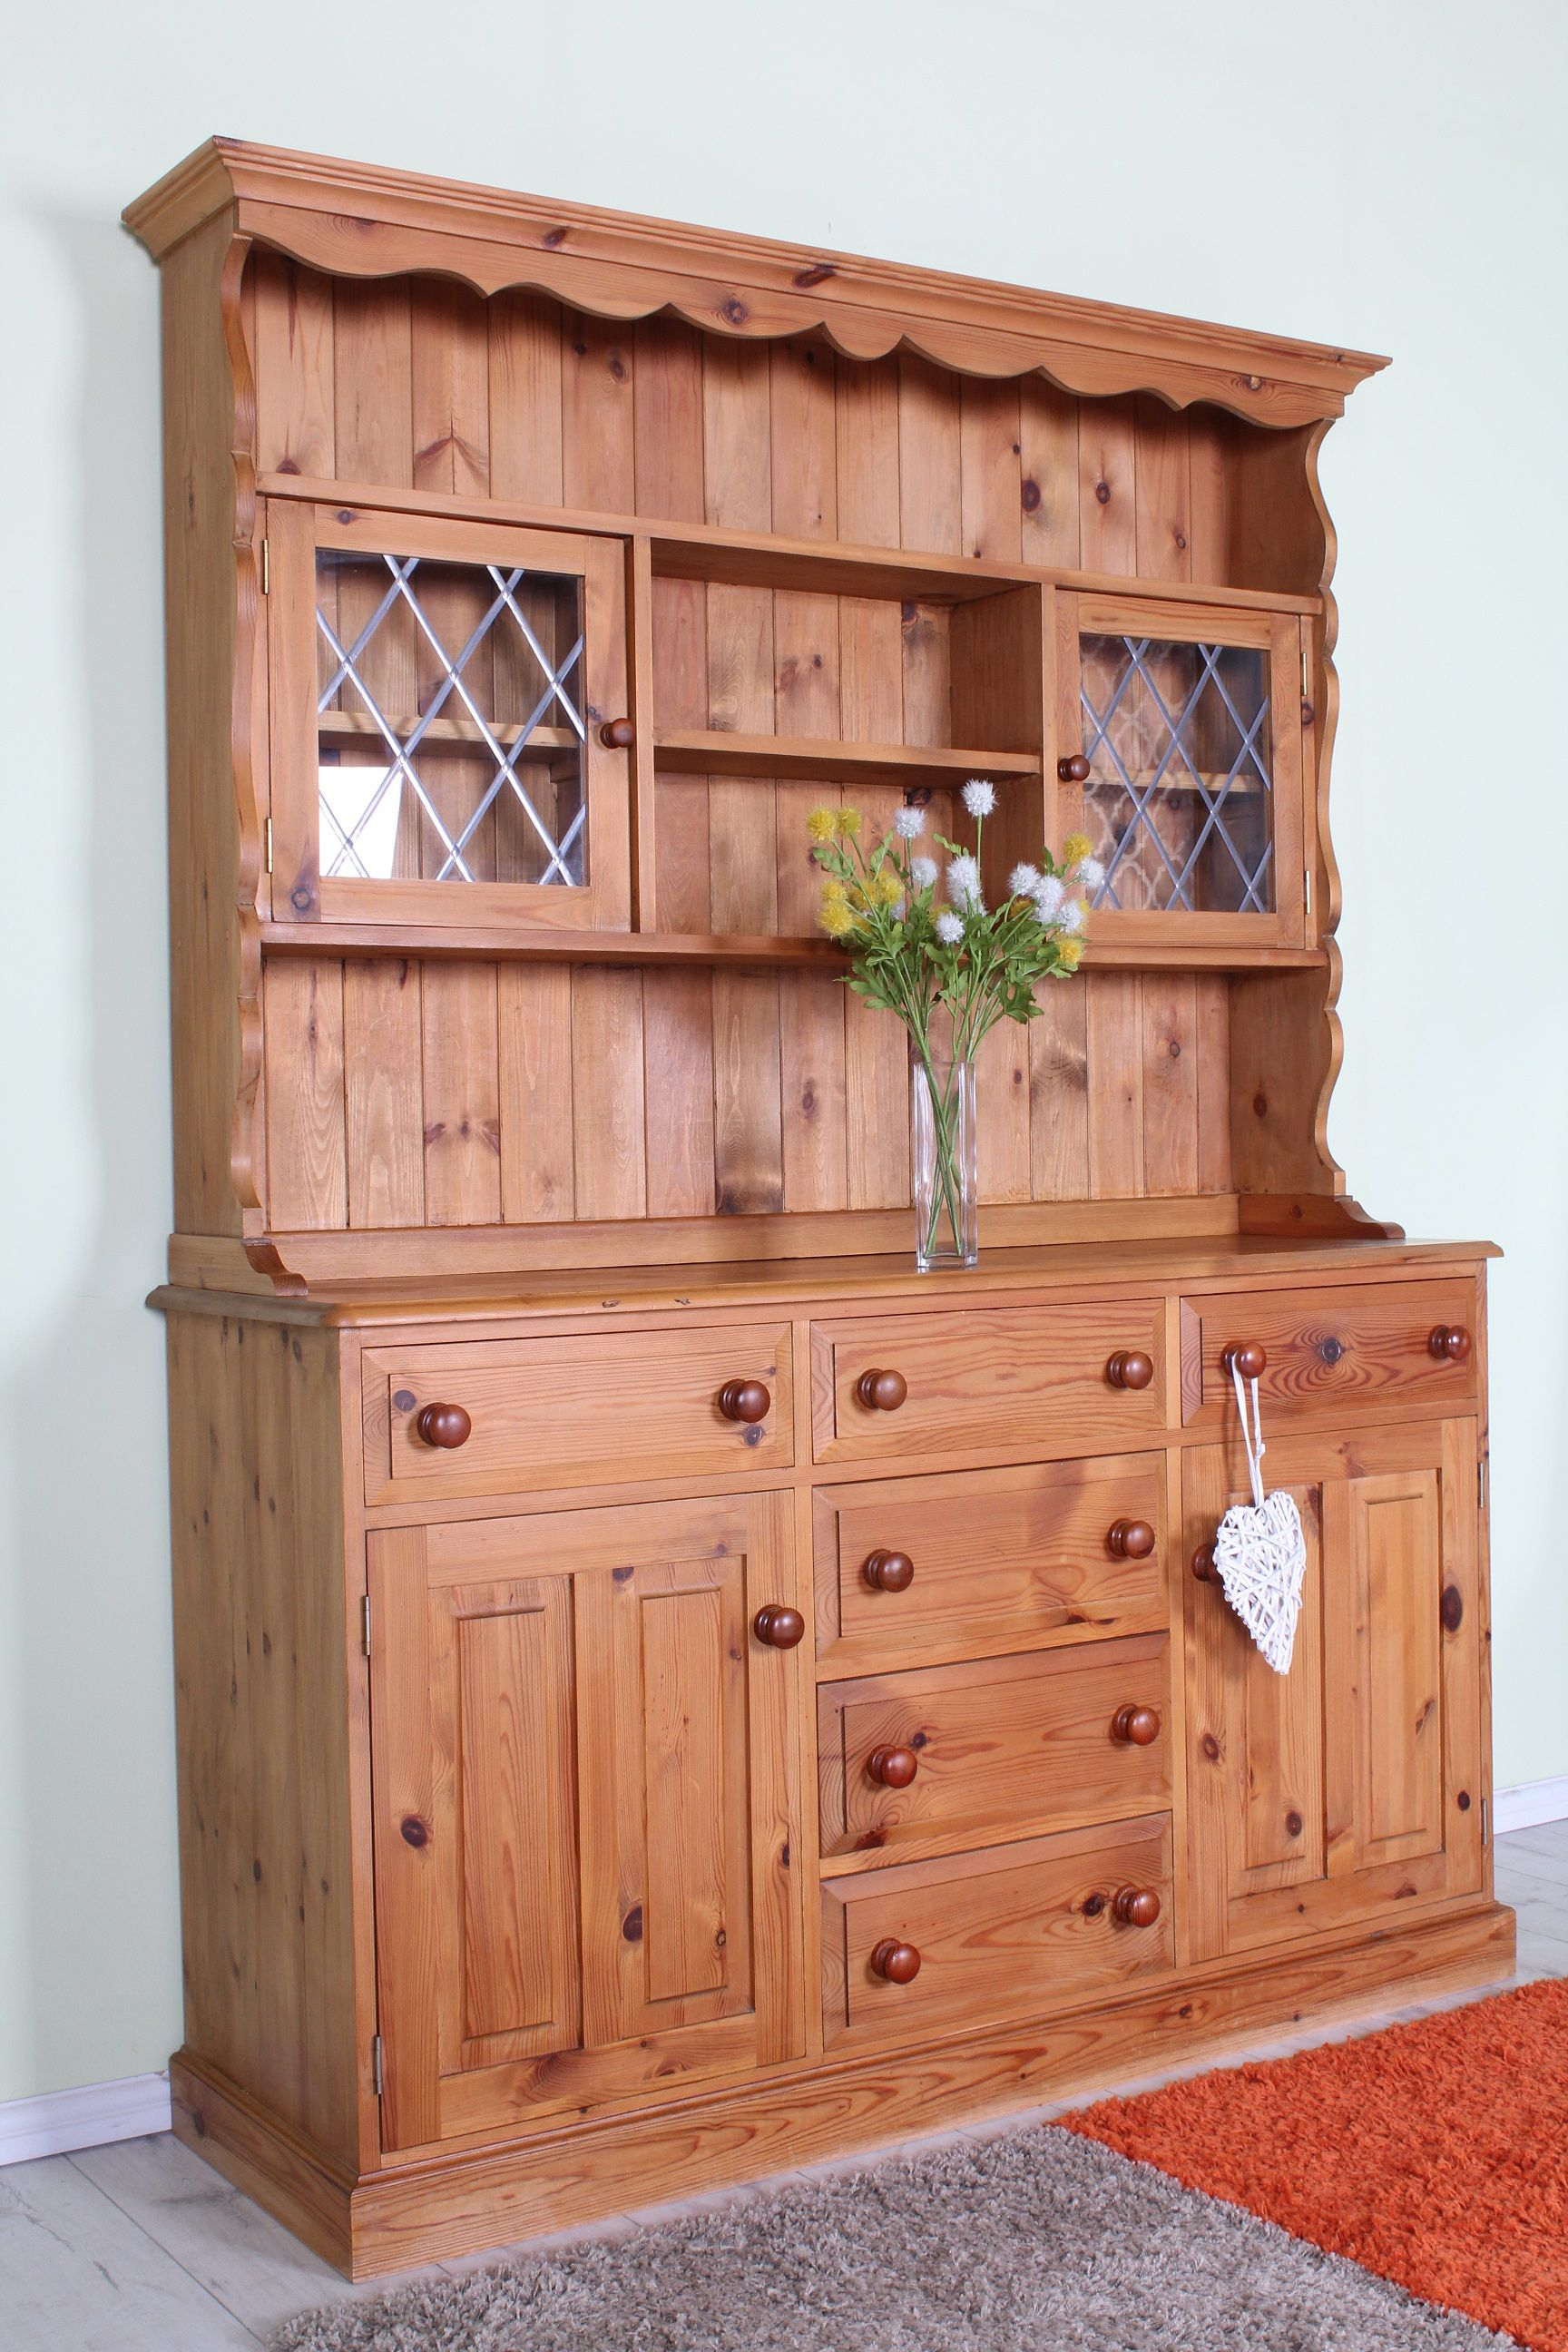 Welsh dresser all tongue & groove with dovetail joints solid